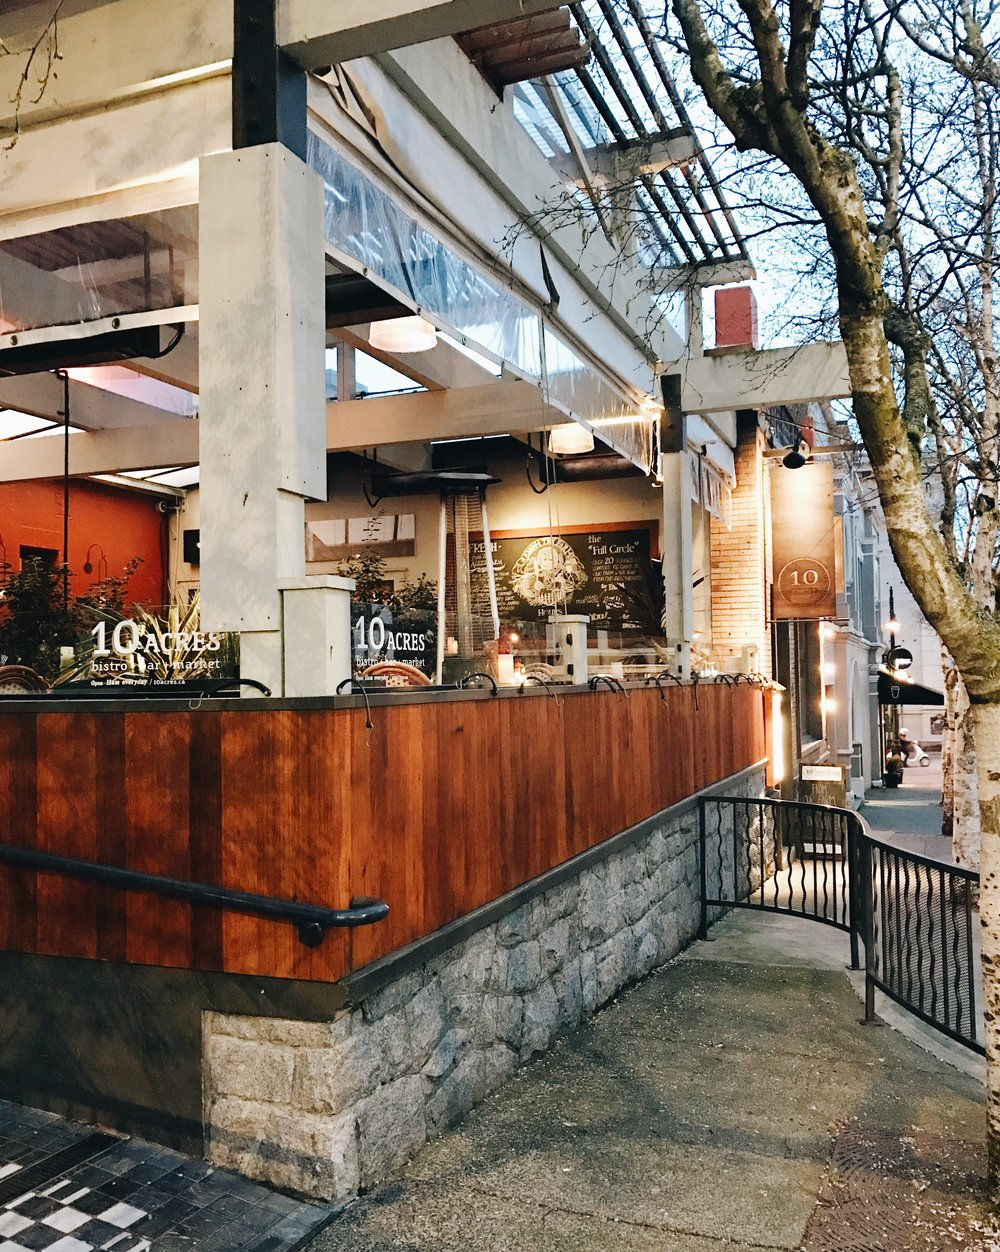 10 Acres Restaurant, Victoria BC, Nyla Free Designs Inc